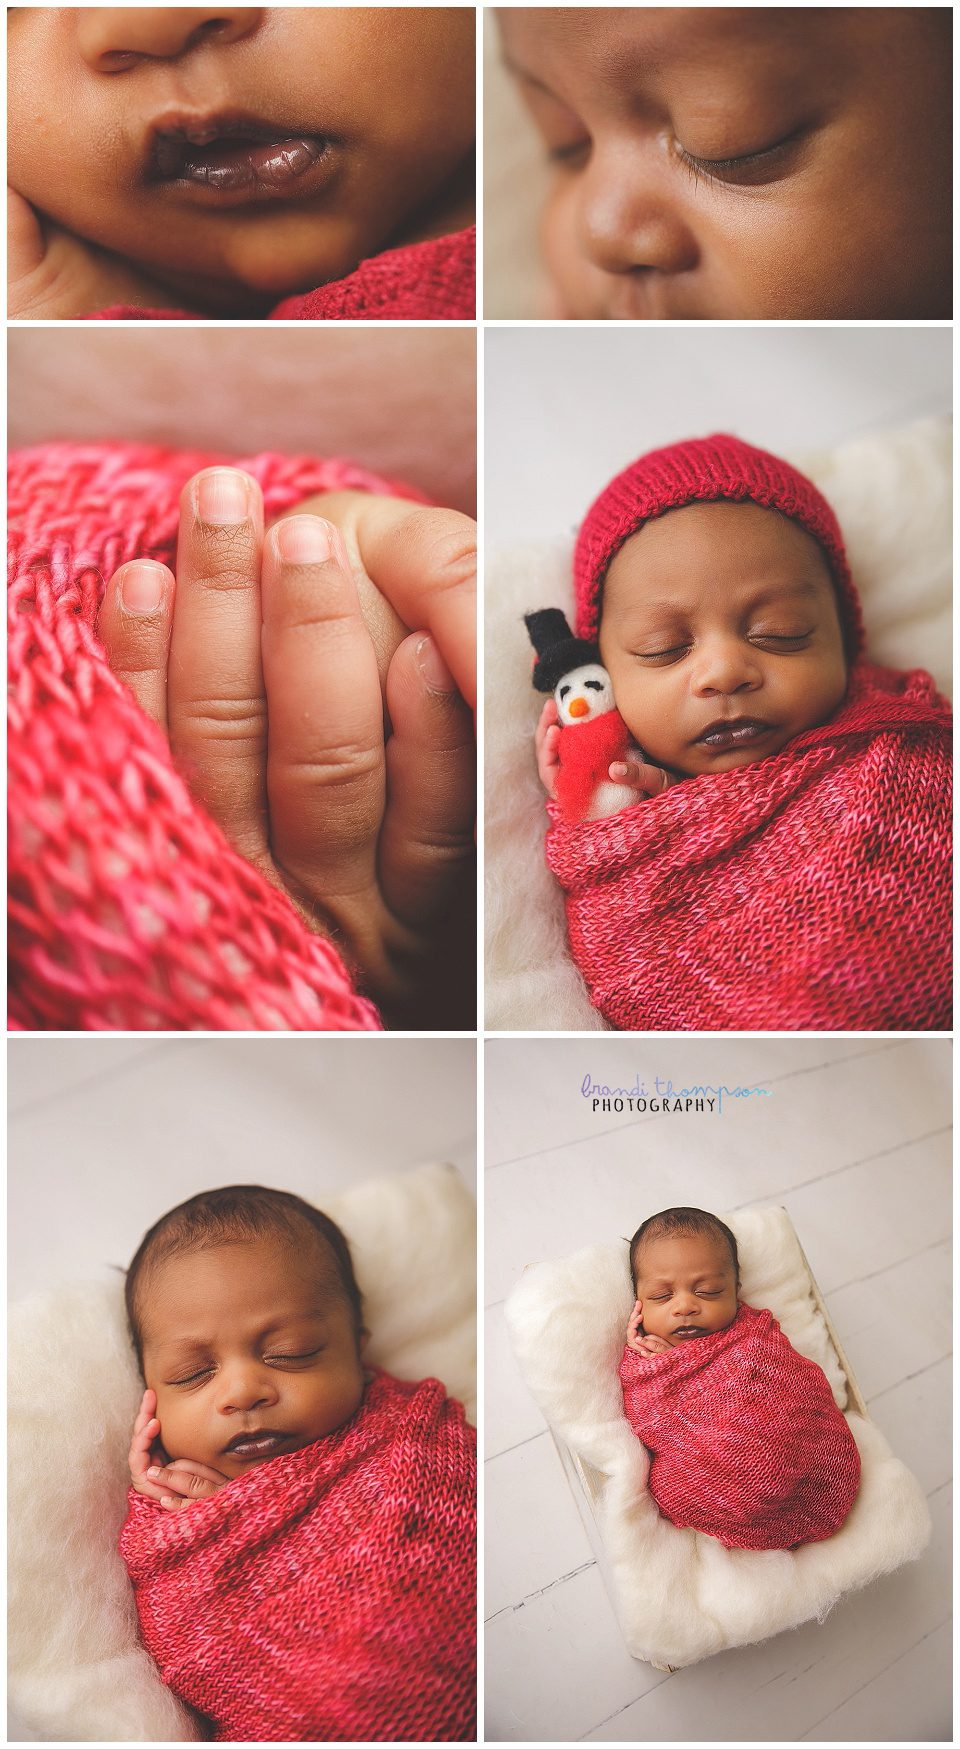 close up of newborn baby and baby in red wrap and hat